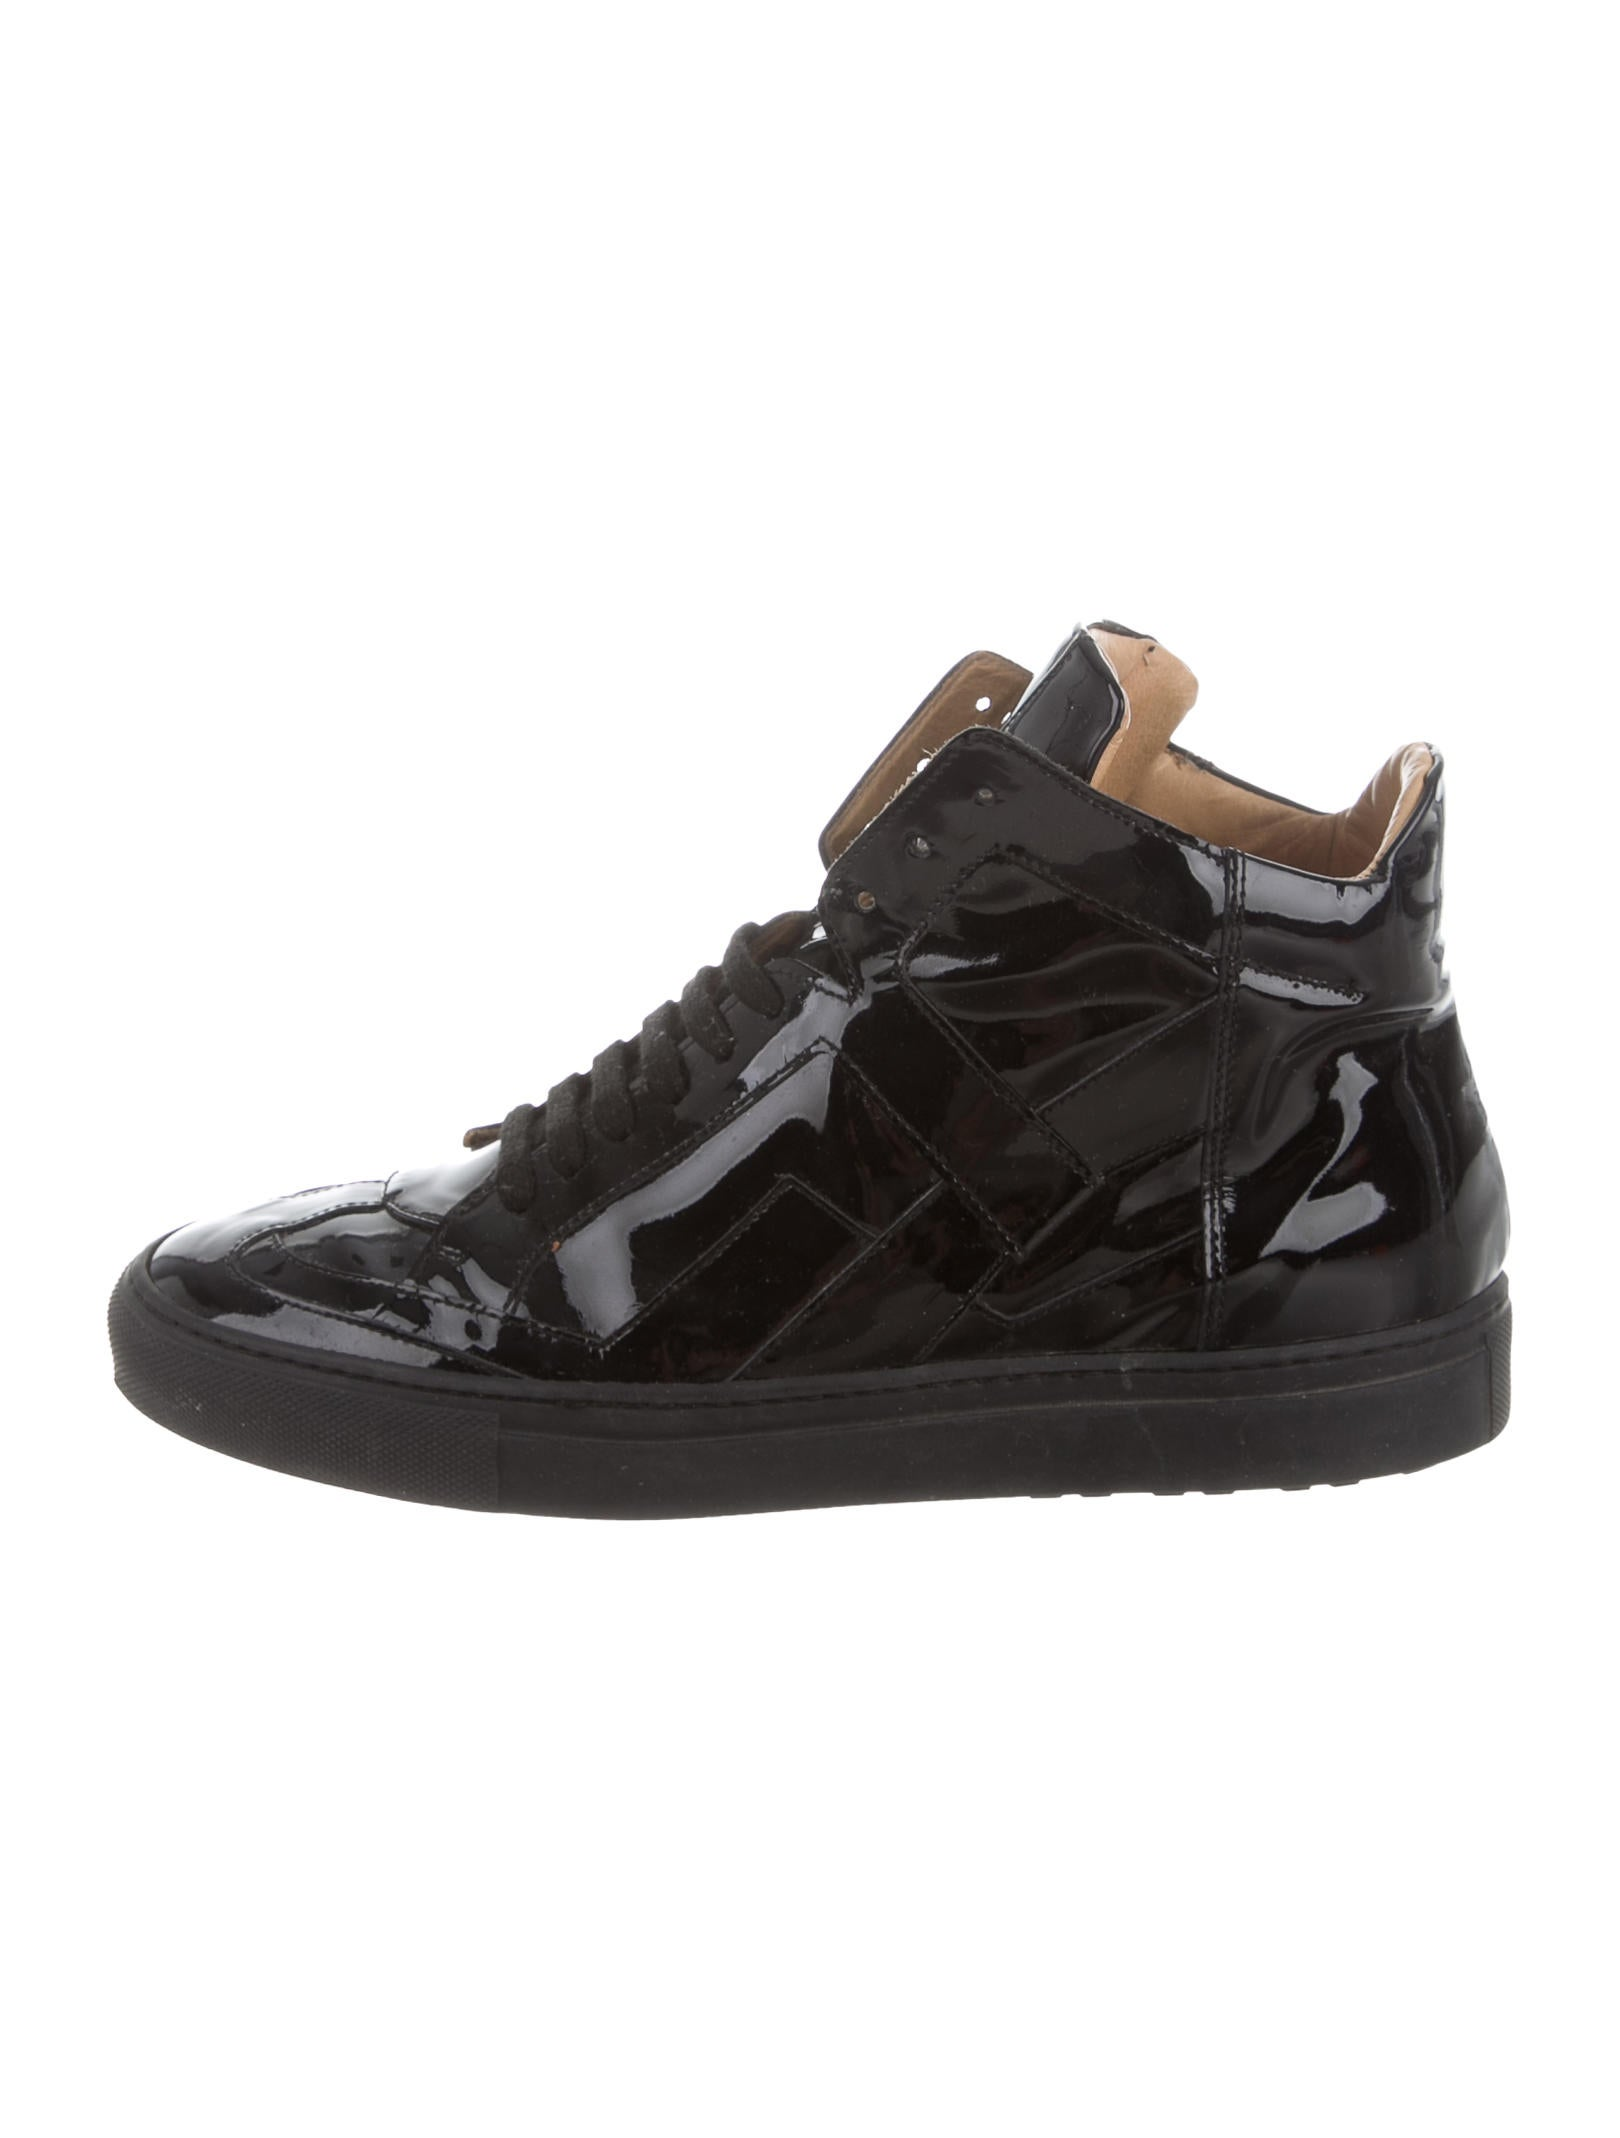 Mm6 by maison martin margiela patent leather high top for Mm6 maison margiela